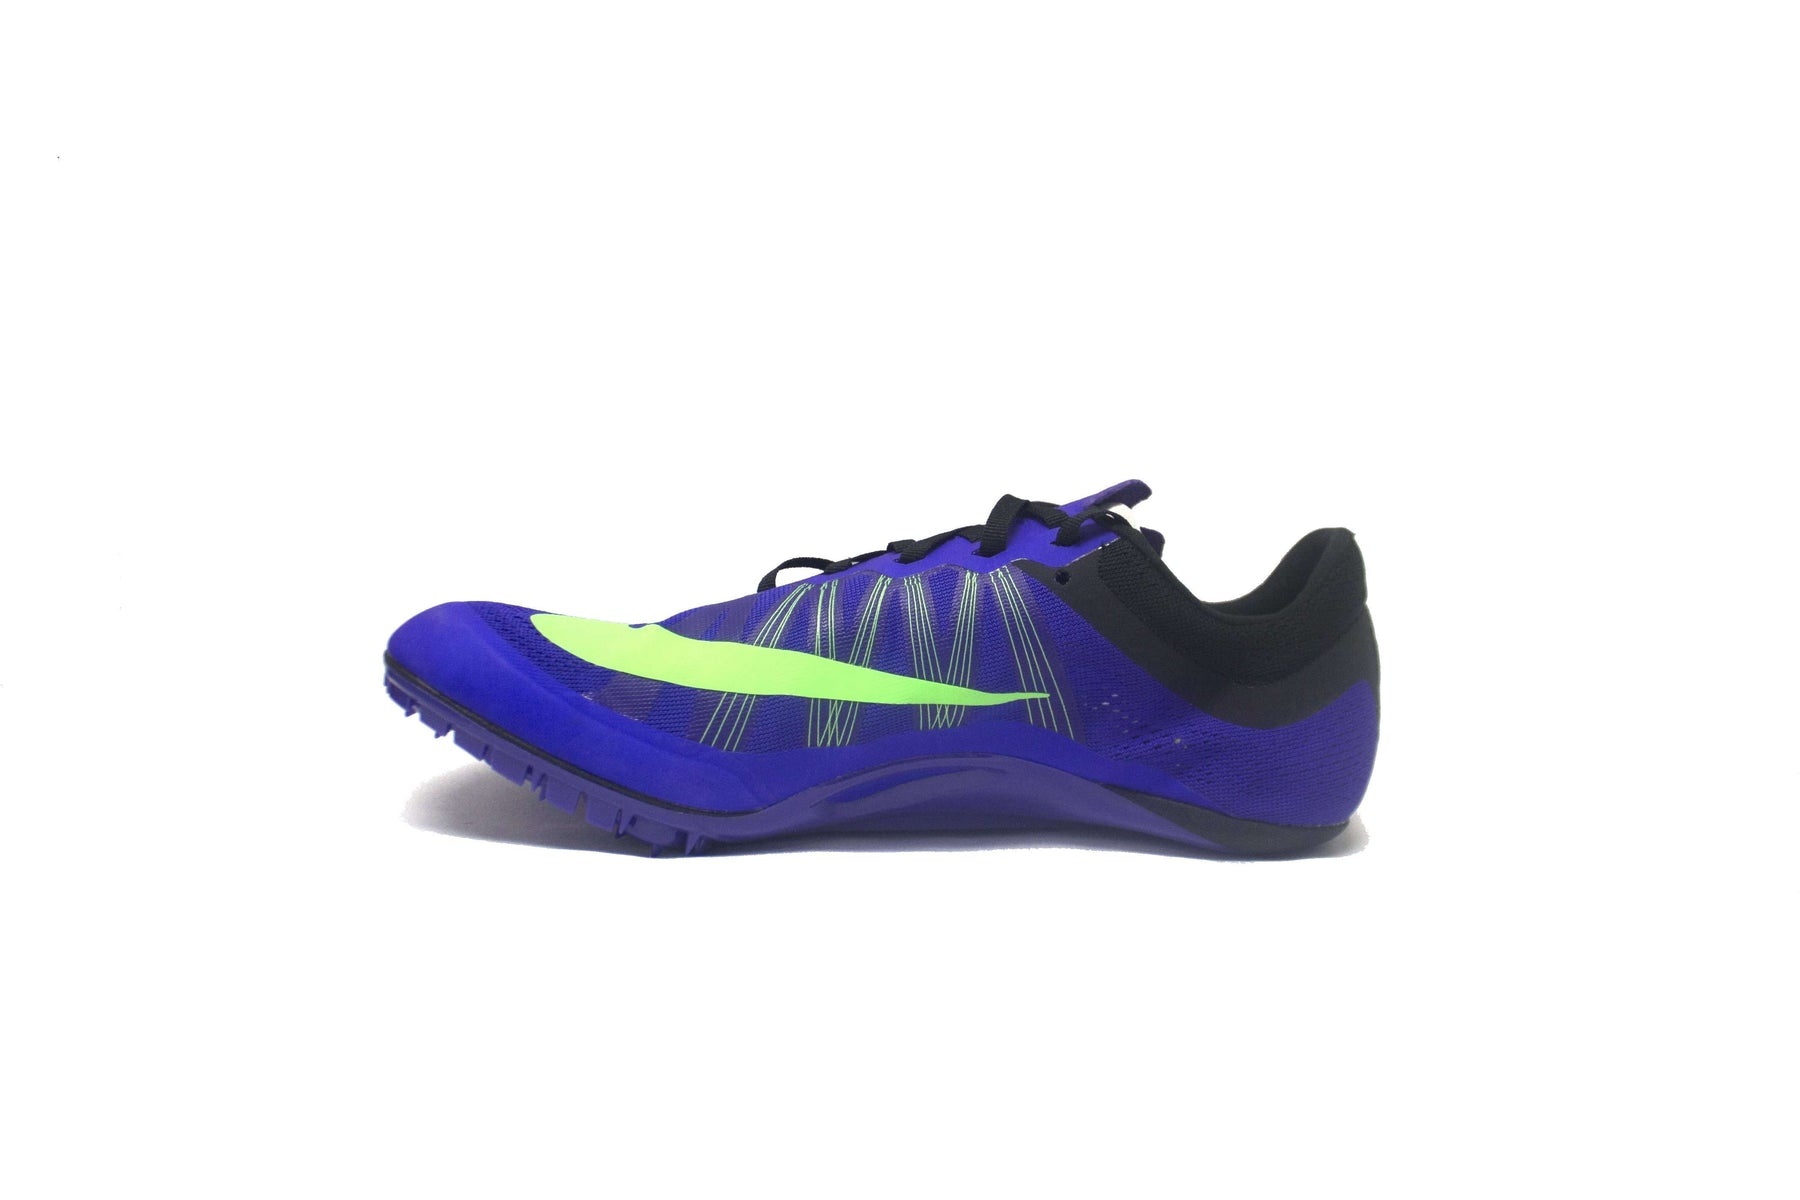 sports shoes febb6 72273 ... Nike Zoom JA Fly 2 Unisex Track Spikes - League Outfitters ...